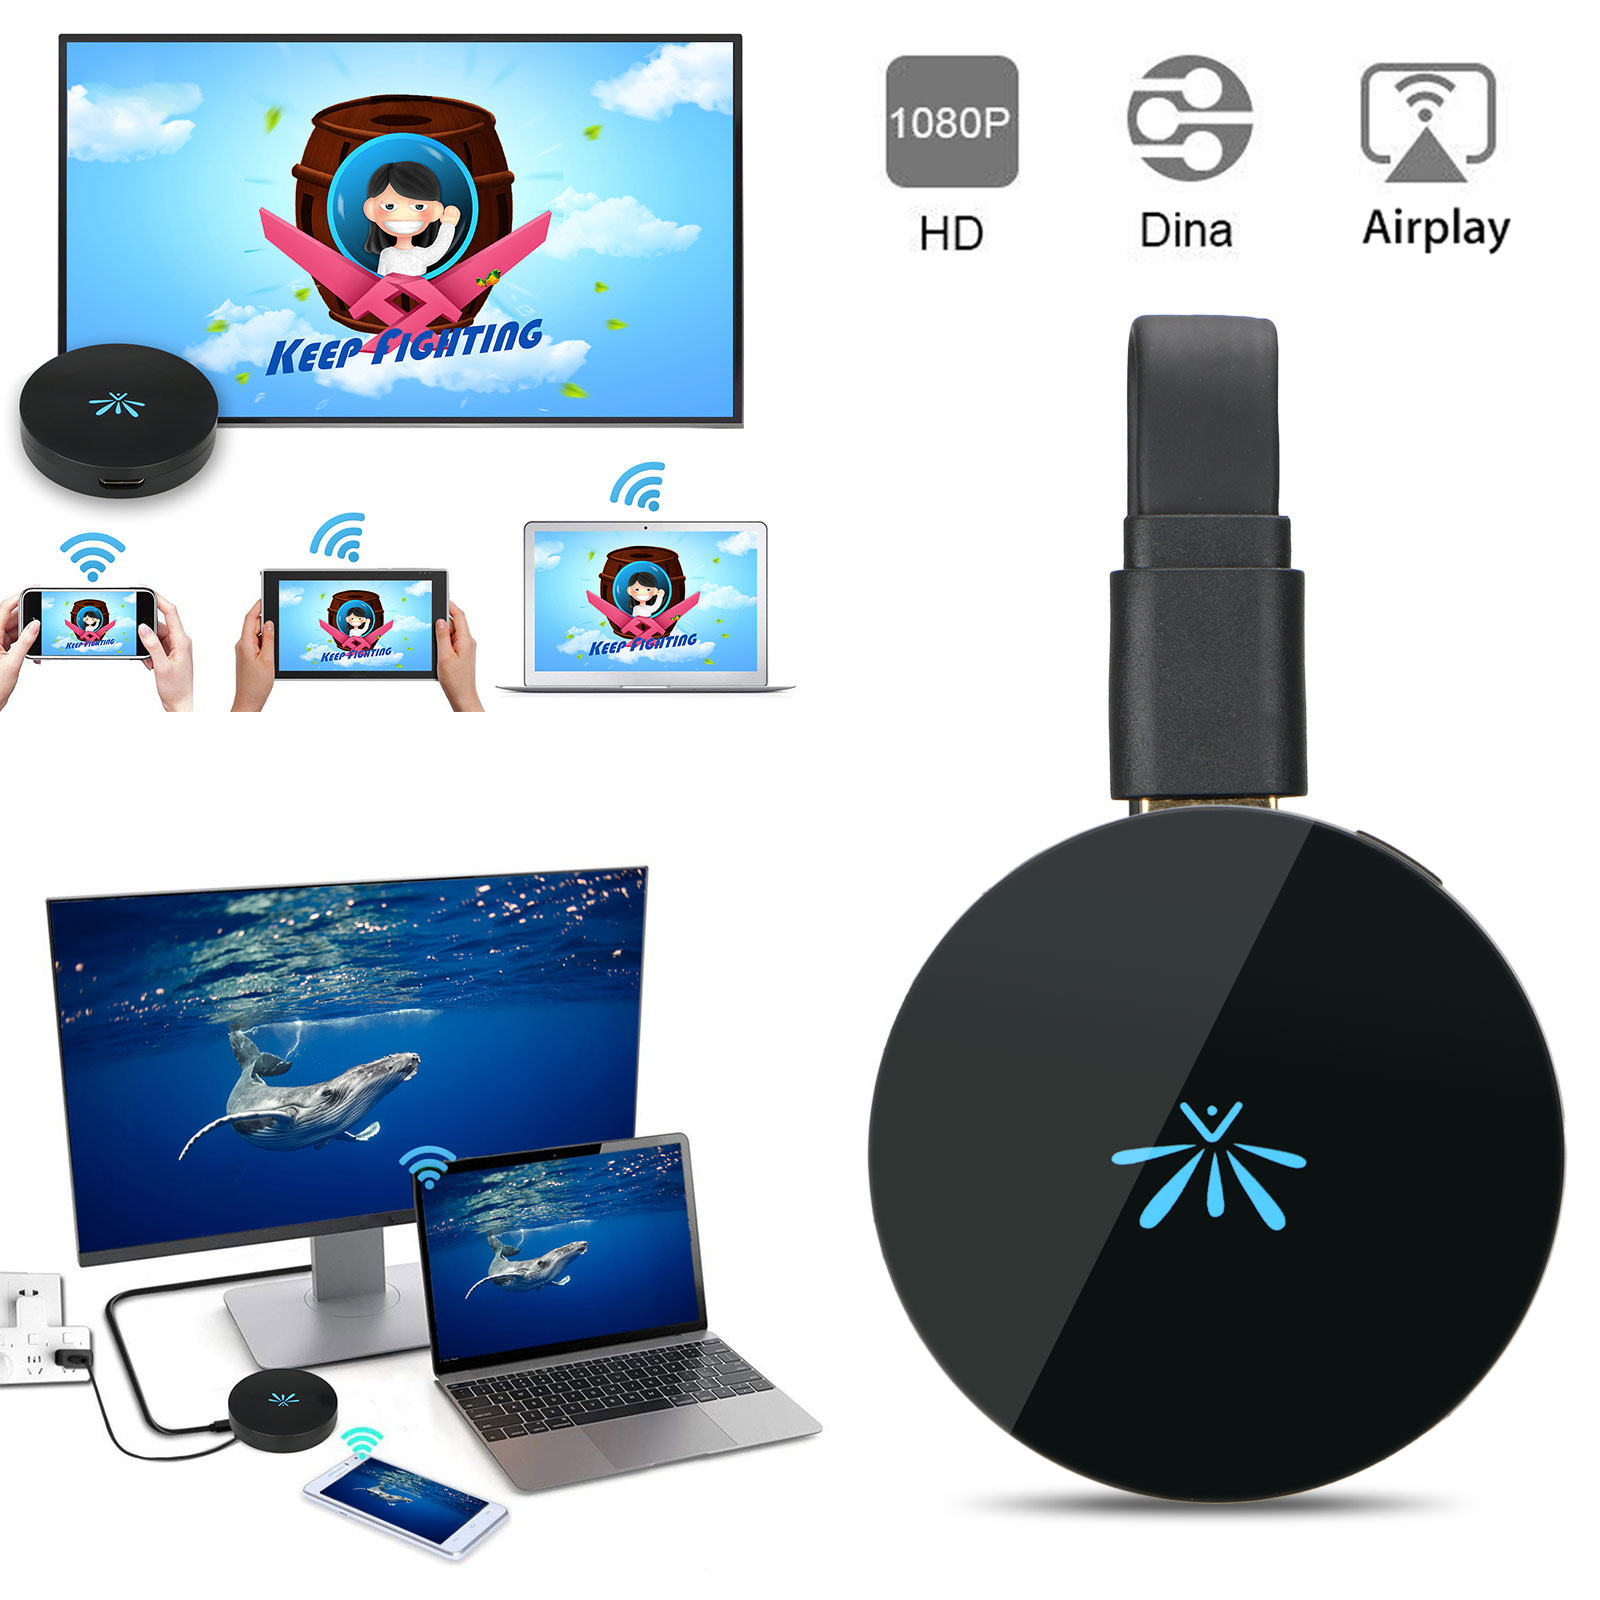 TV Stick 1080P Video WiFi Display Mirroring /& Casting Wireless HDMI Dongle G6